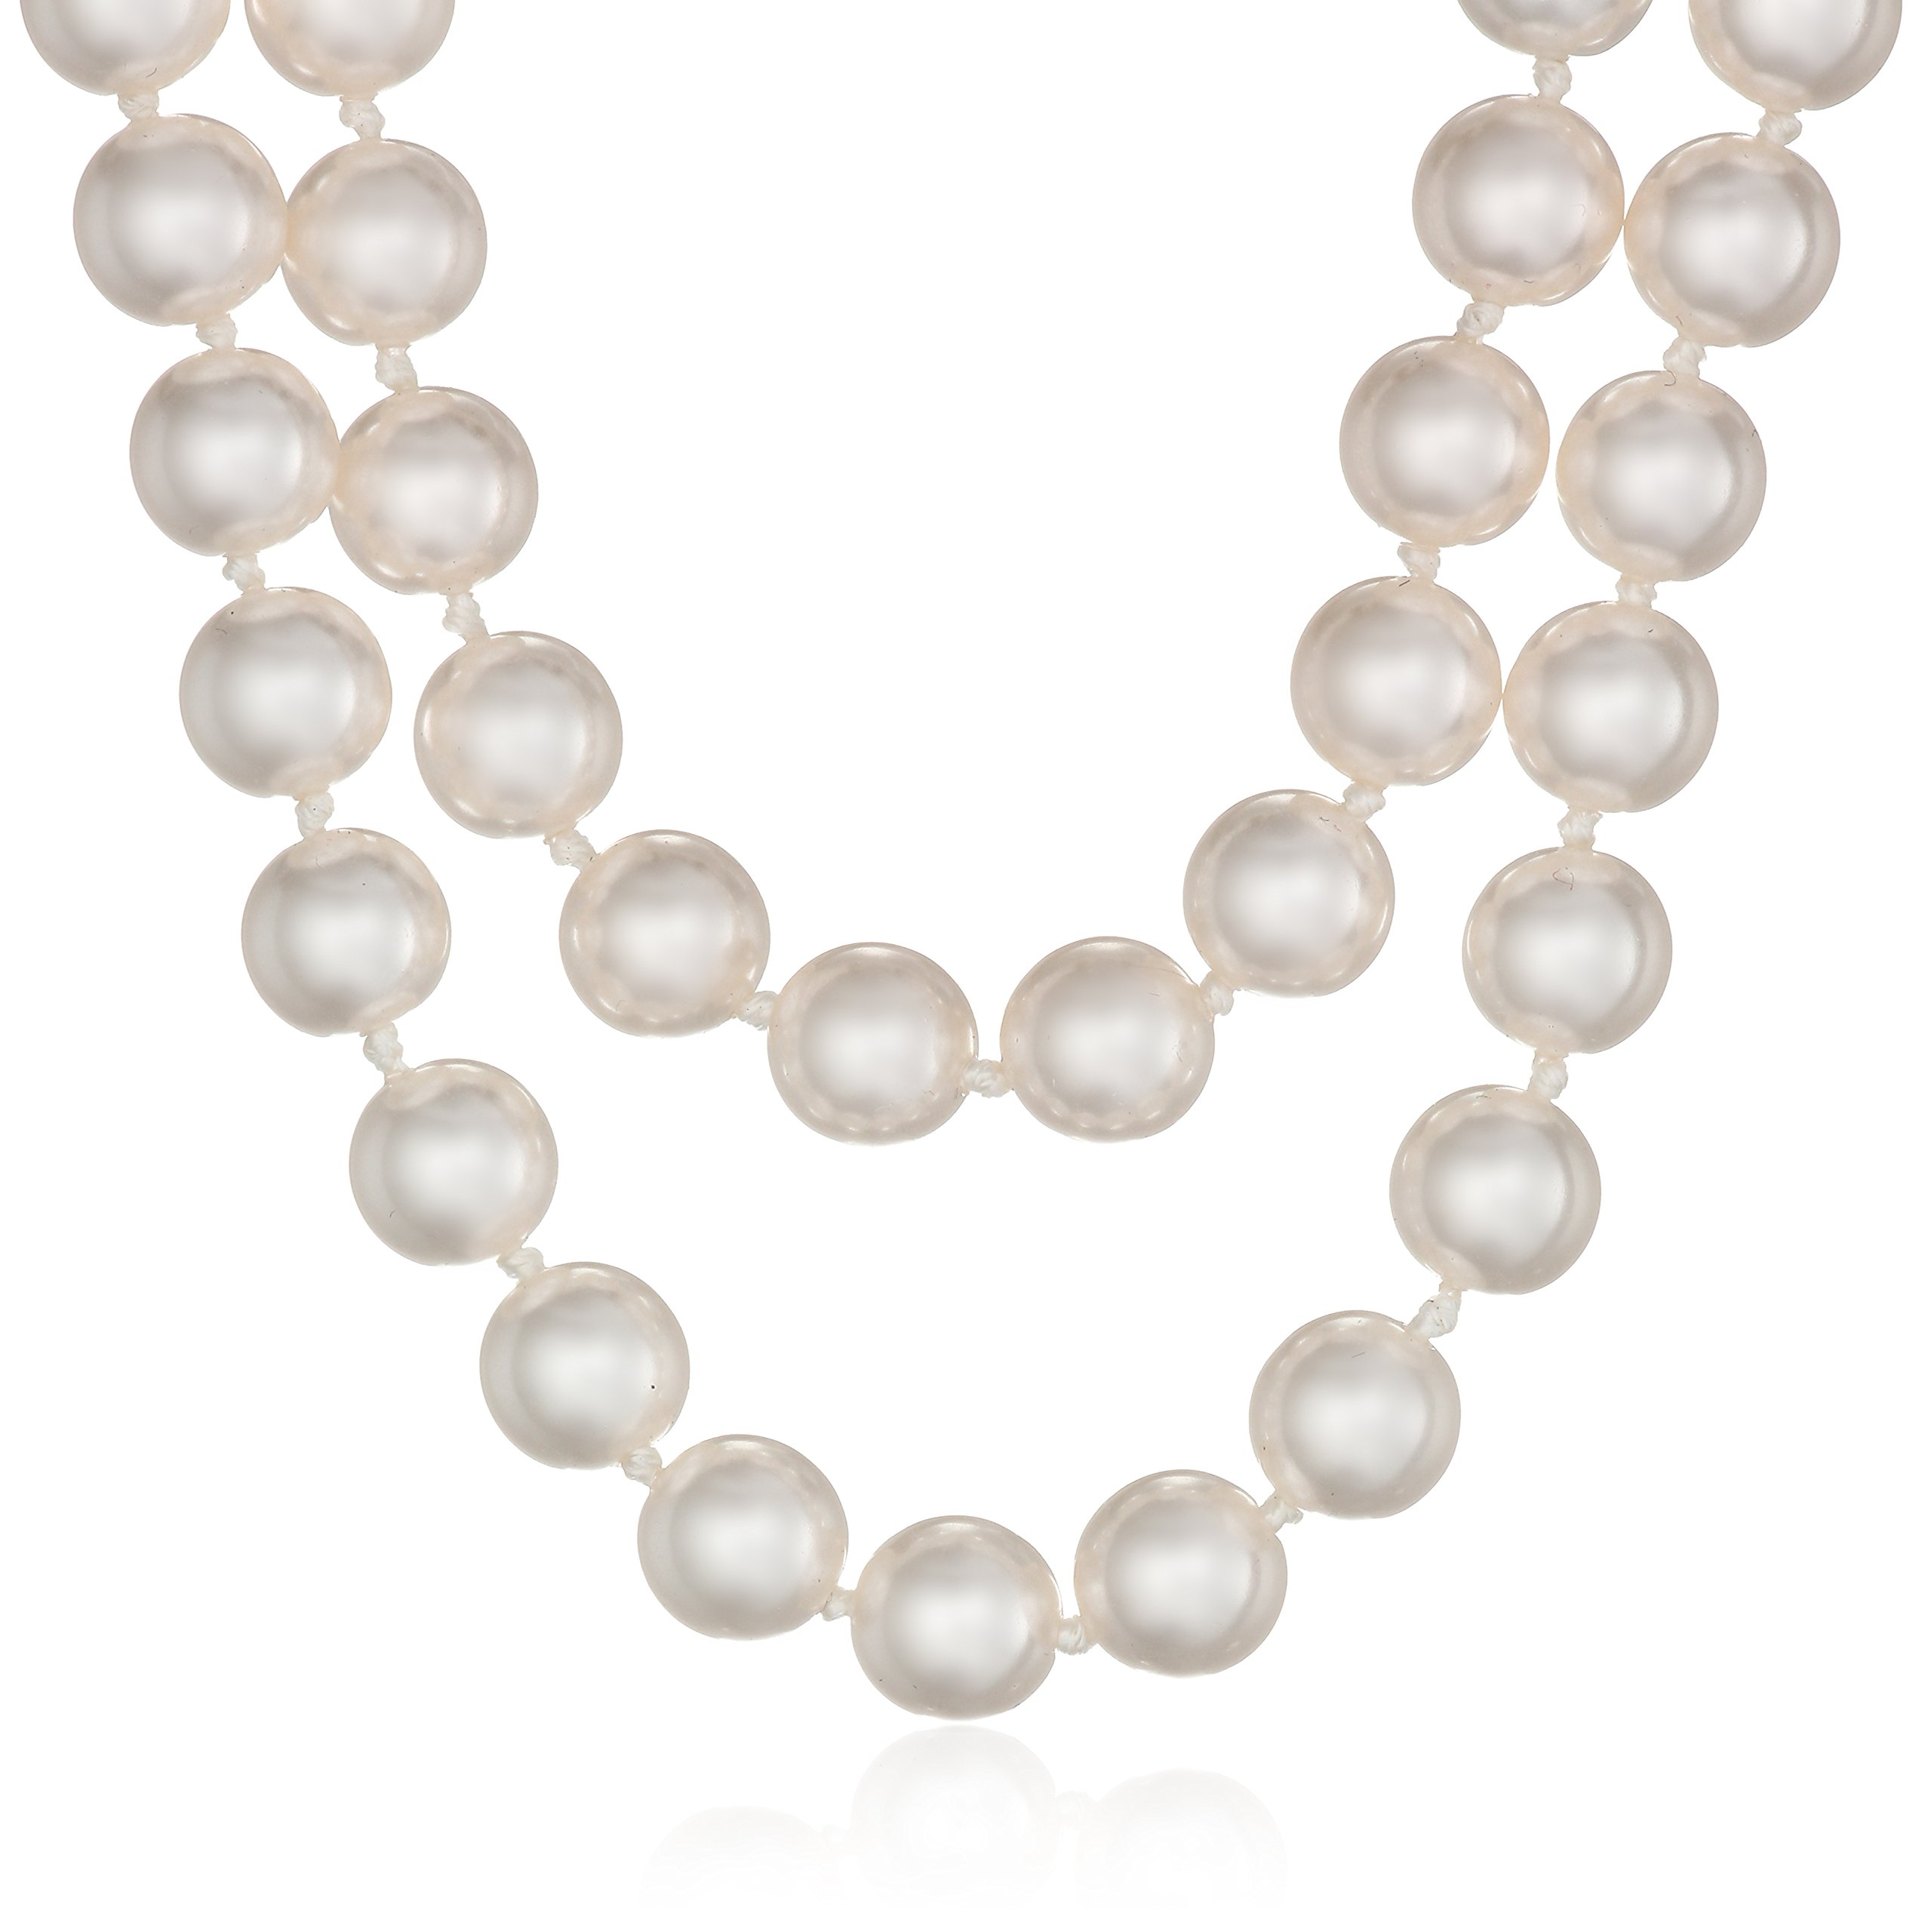 Amazon Essentials Cream Colored 8mm Simulated Pearl Strand Necklace, 60''